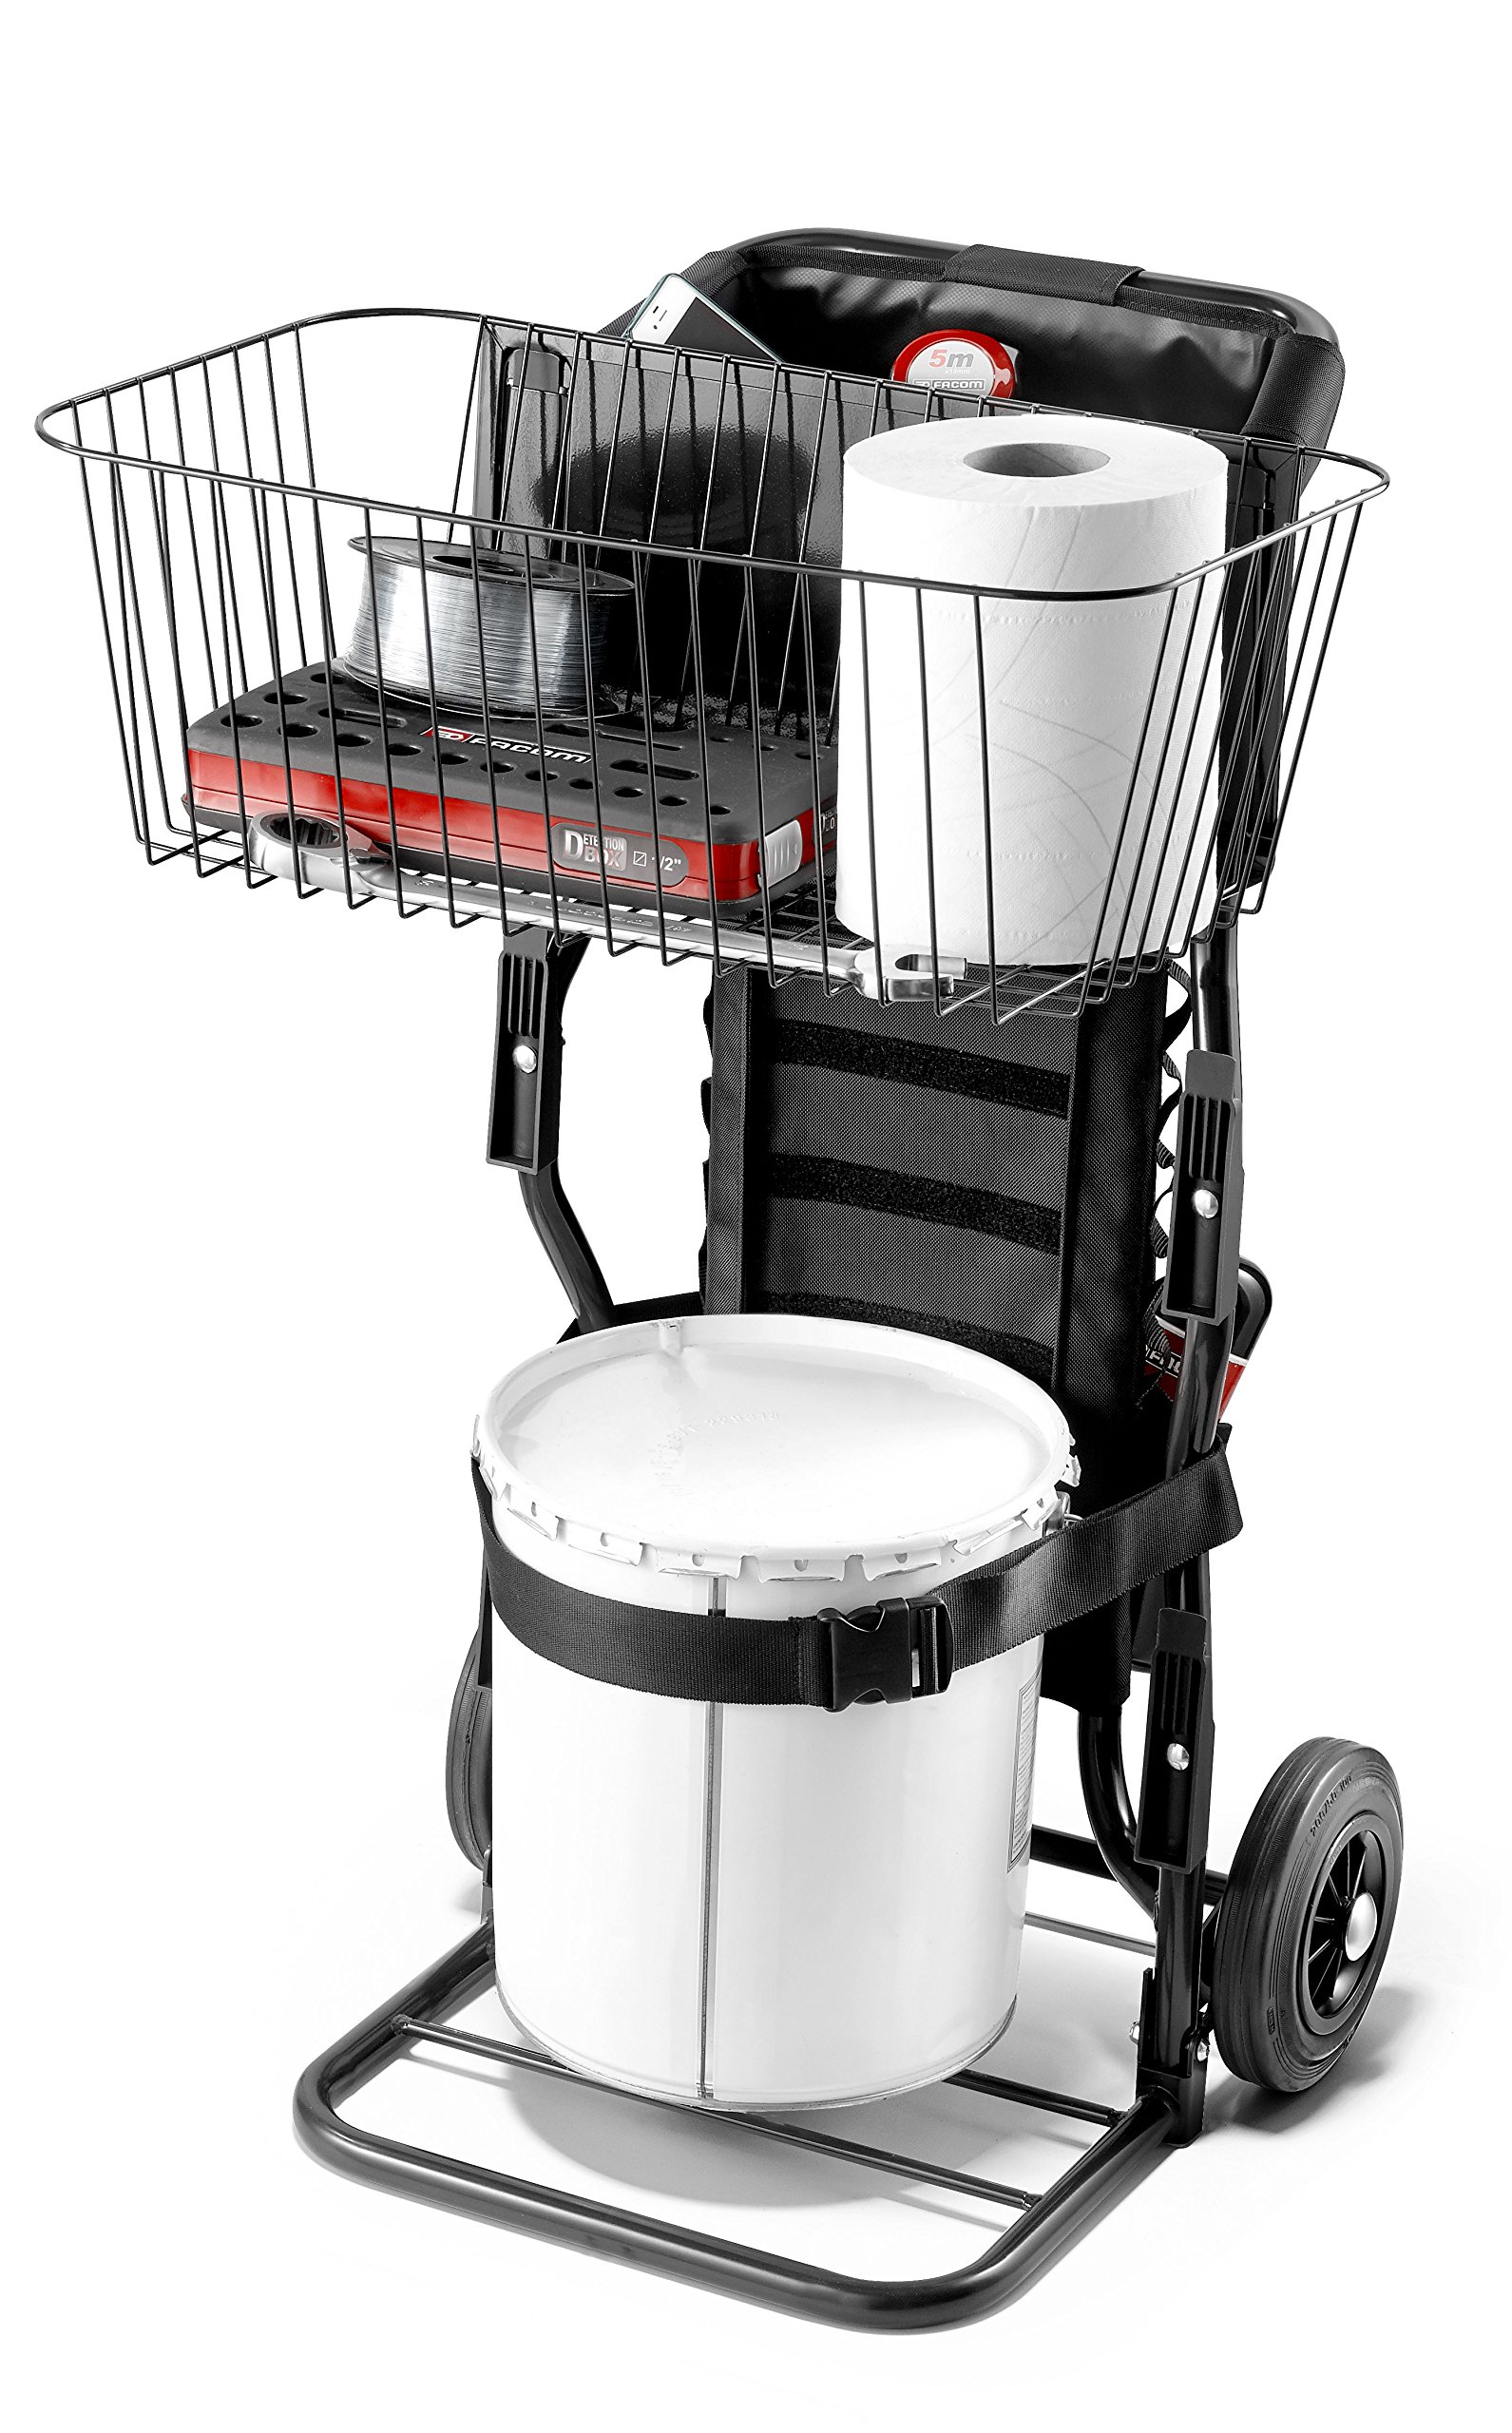 Facom BT.HT1PG Multi-Purpose DeliveryTrolley by Facom (Image #6)